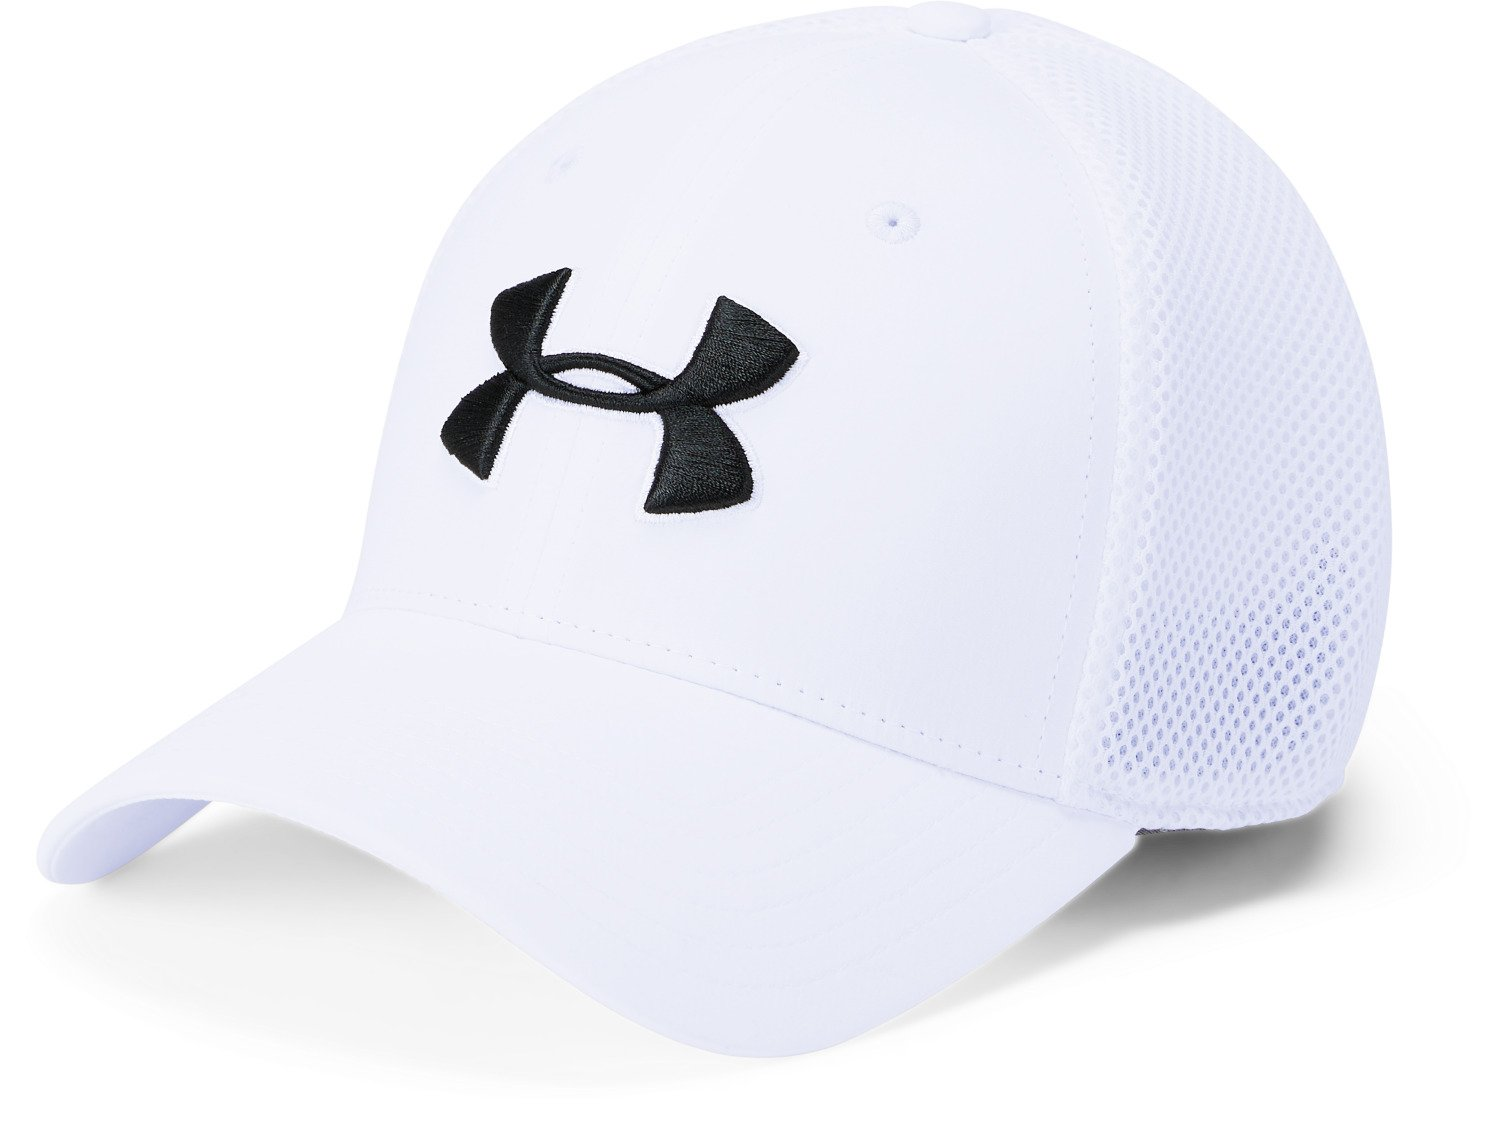 2e401bbb545 Under Armour Men s Threadborne Golf Mesh Cap